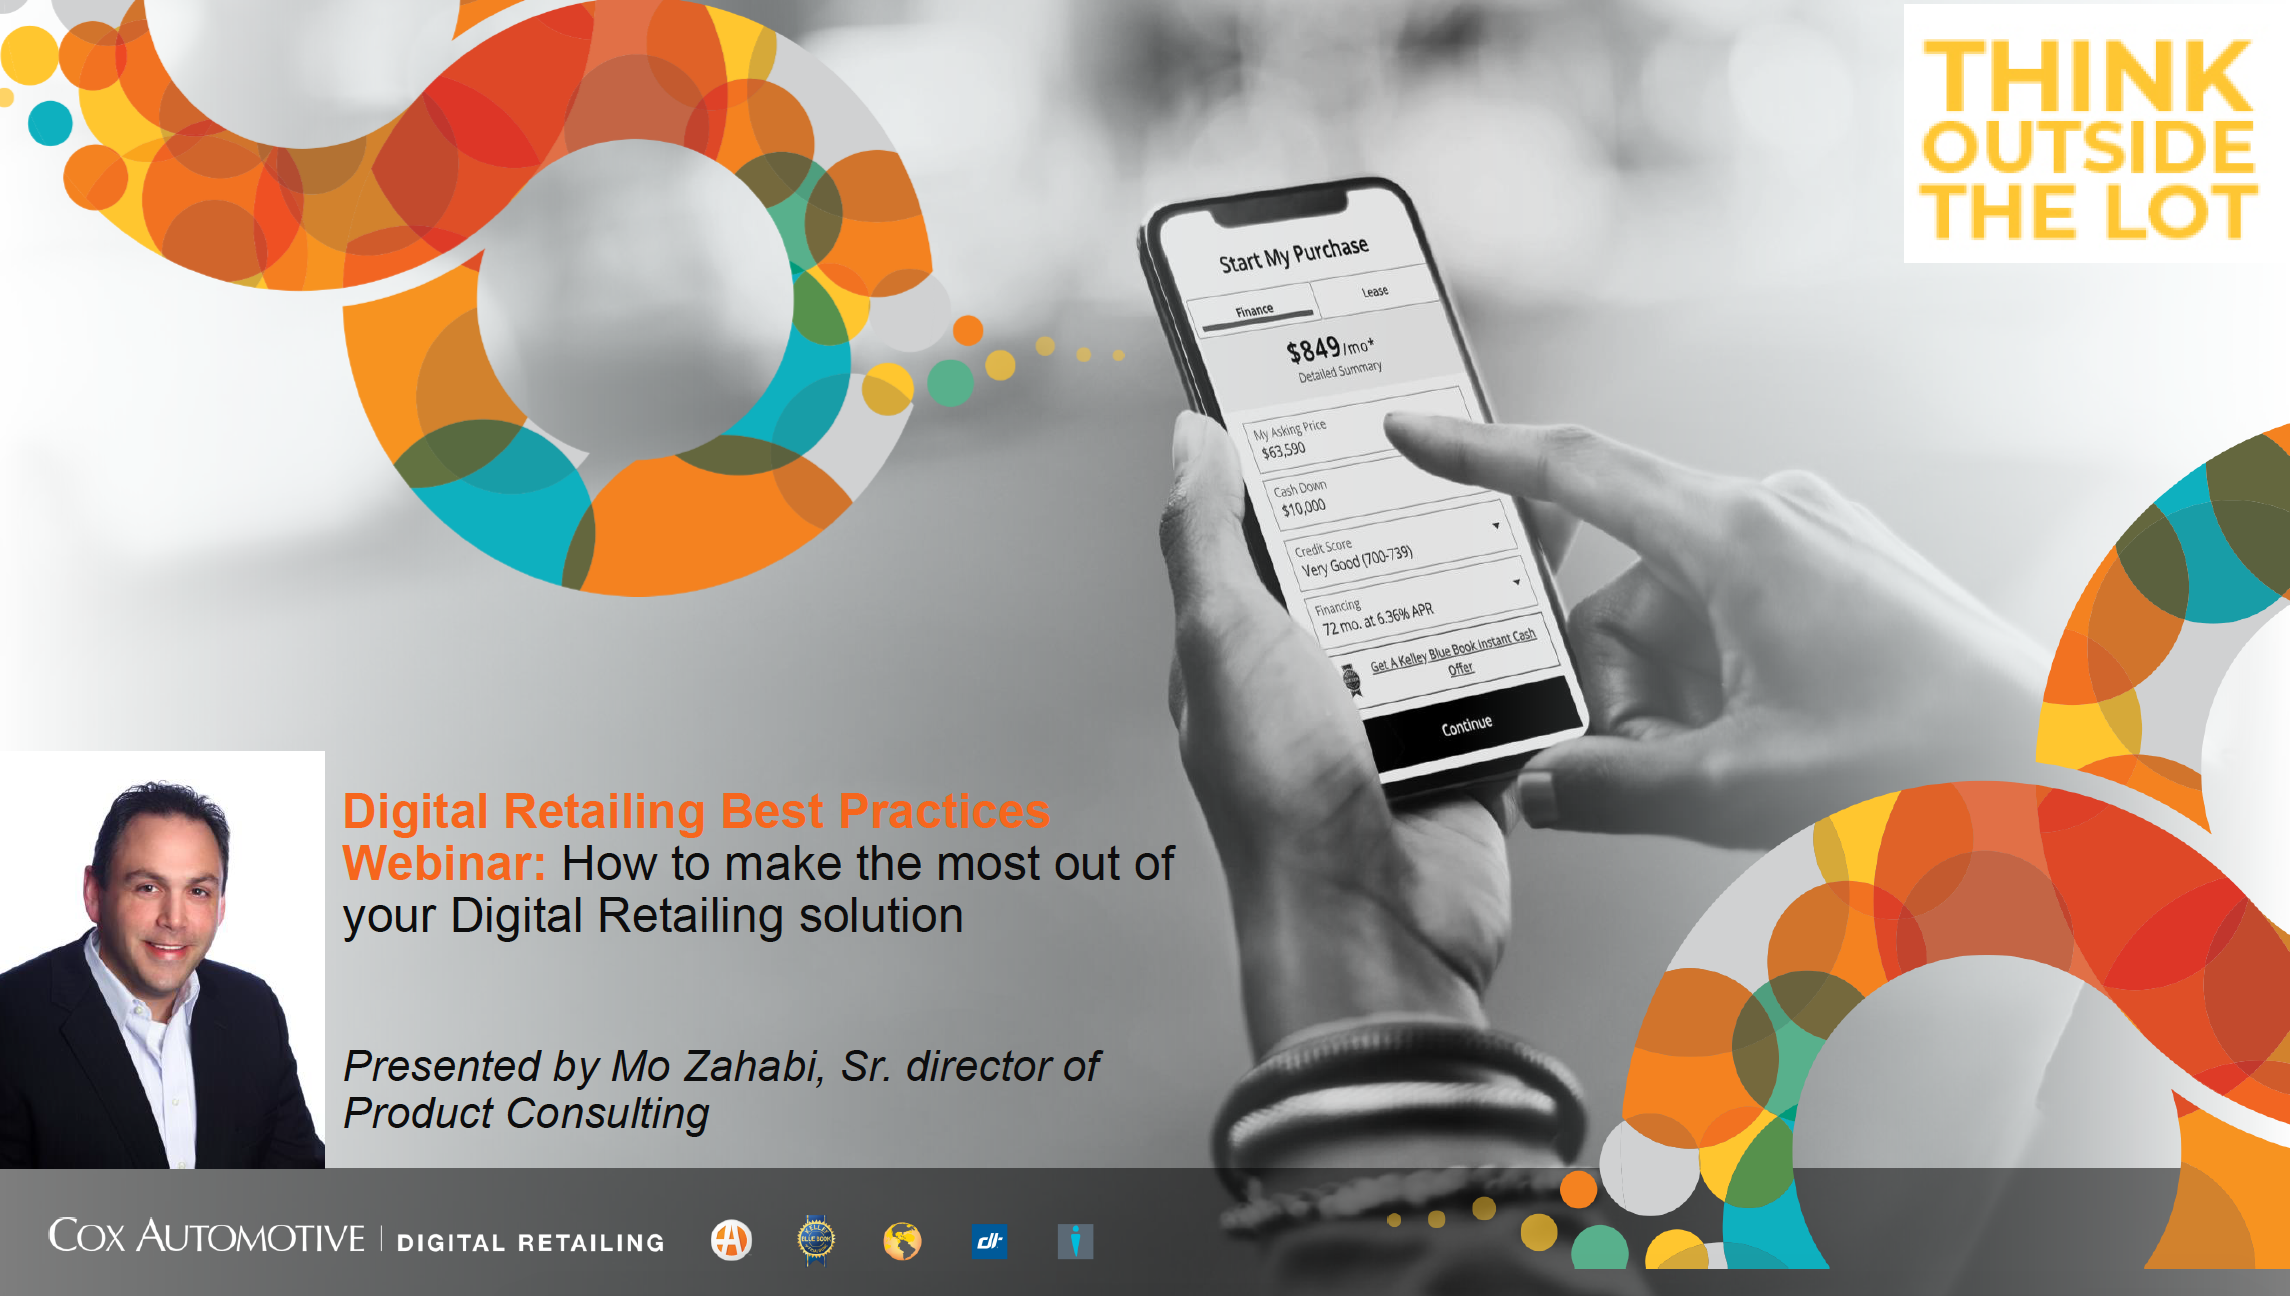 Digital Retailing Best Practices Webinar: How to Make the Most Out of Your Digital Retailing Solution